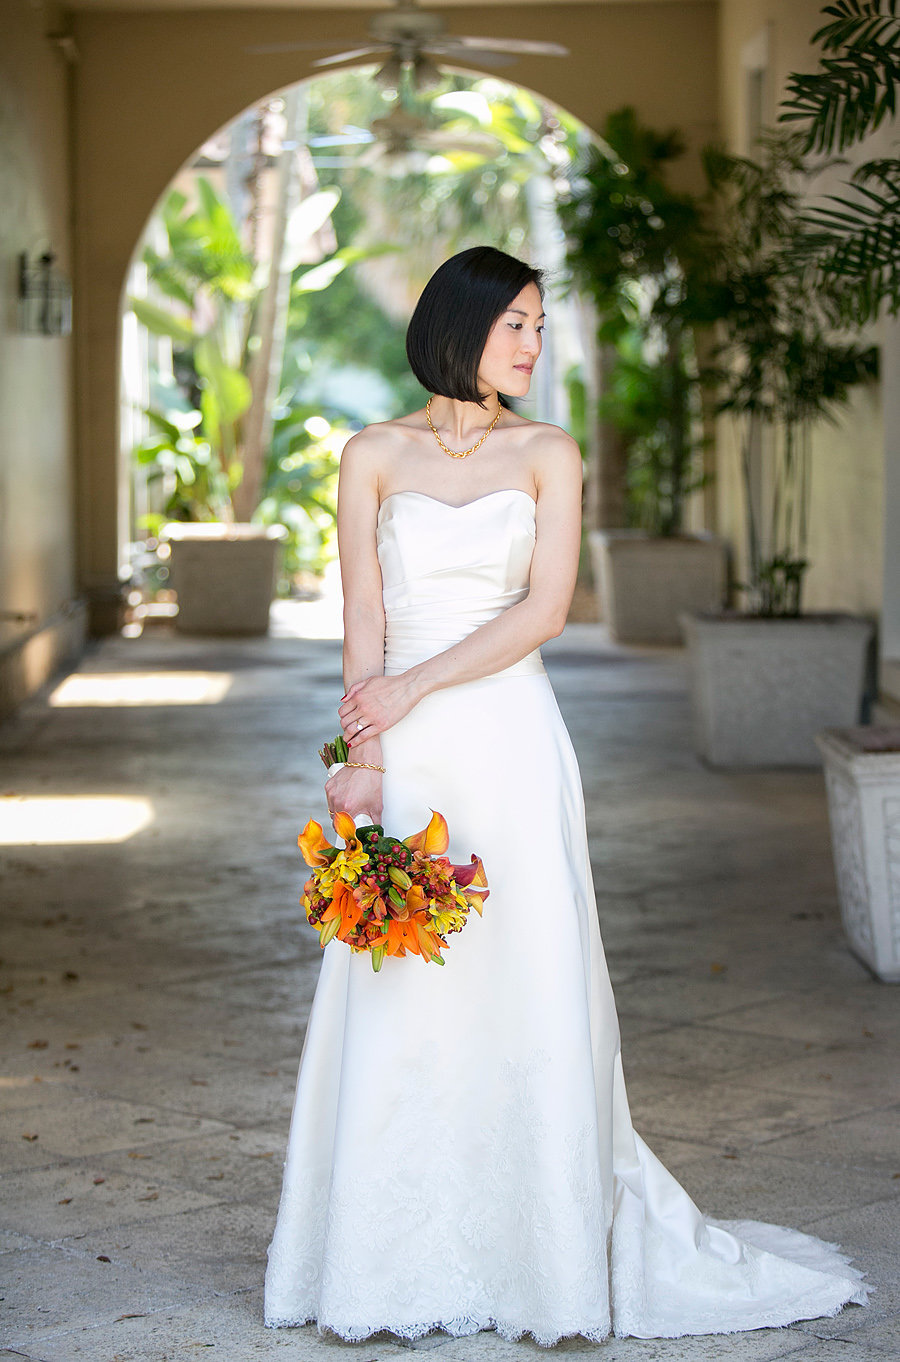 asian bride with orange flowers